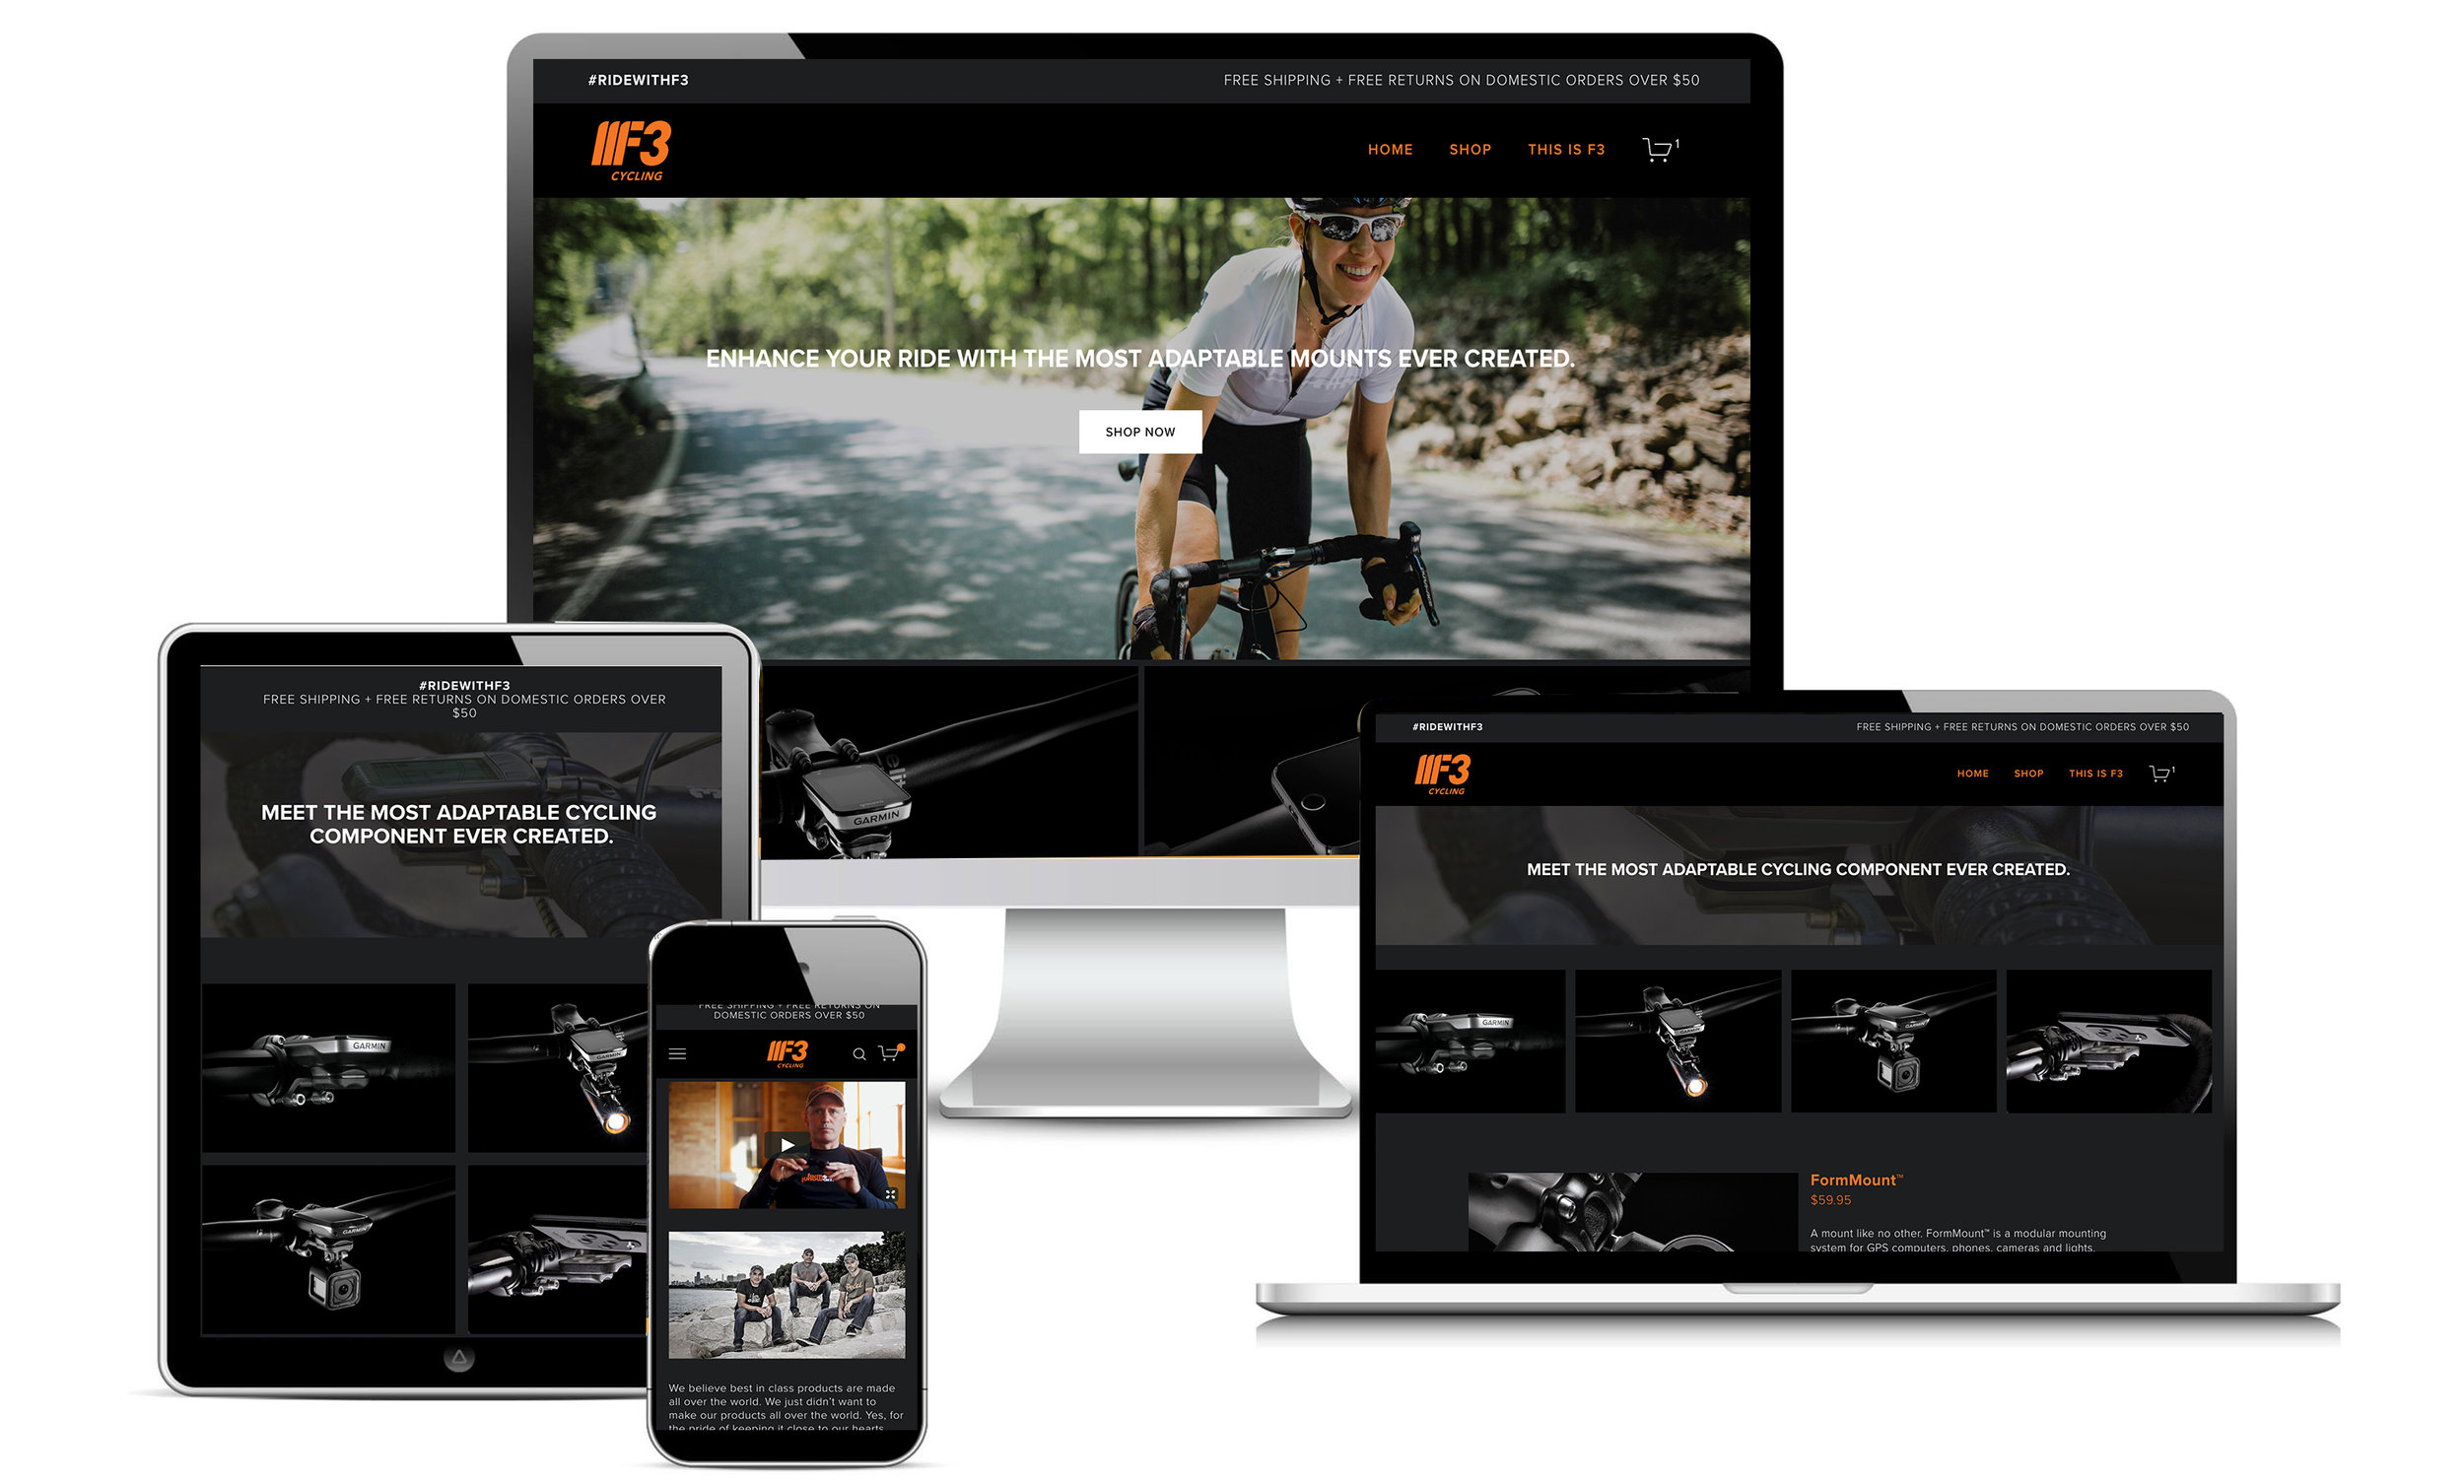 f3-cycling-strategy-driven-marketing-sdm-marketing-websites-design-user-experience-ecommerce-sales.jpg